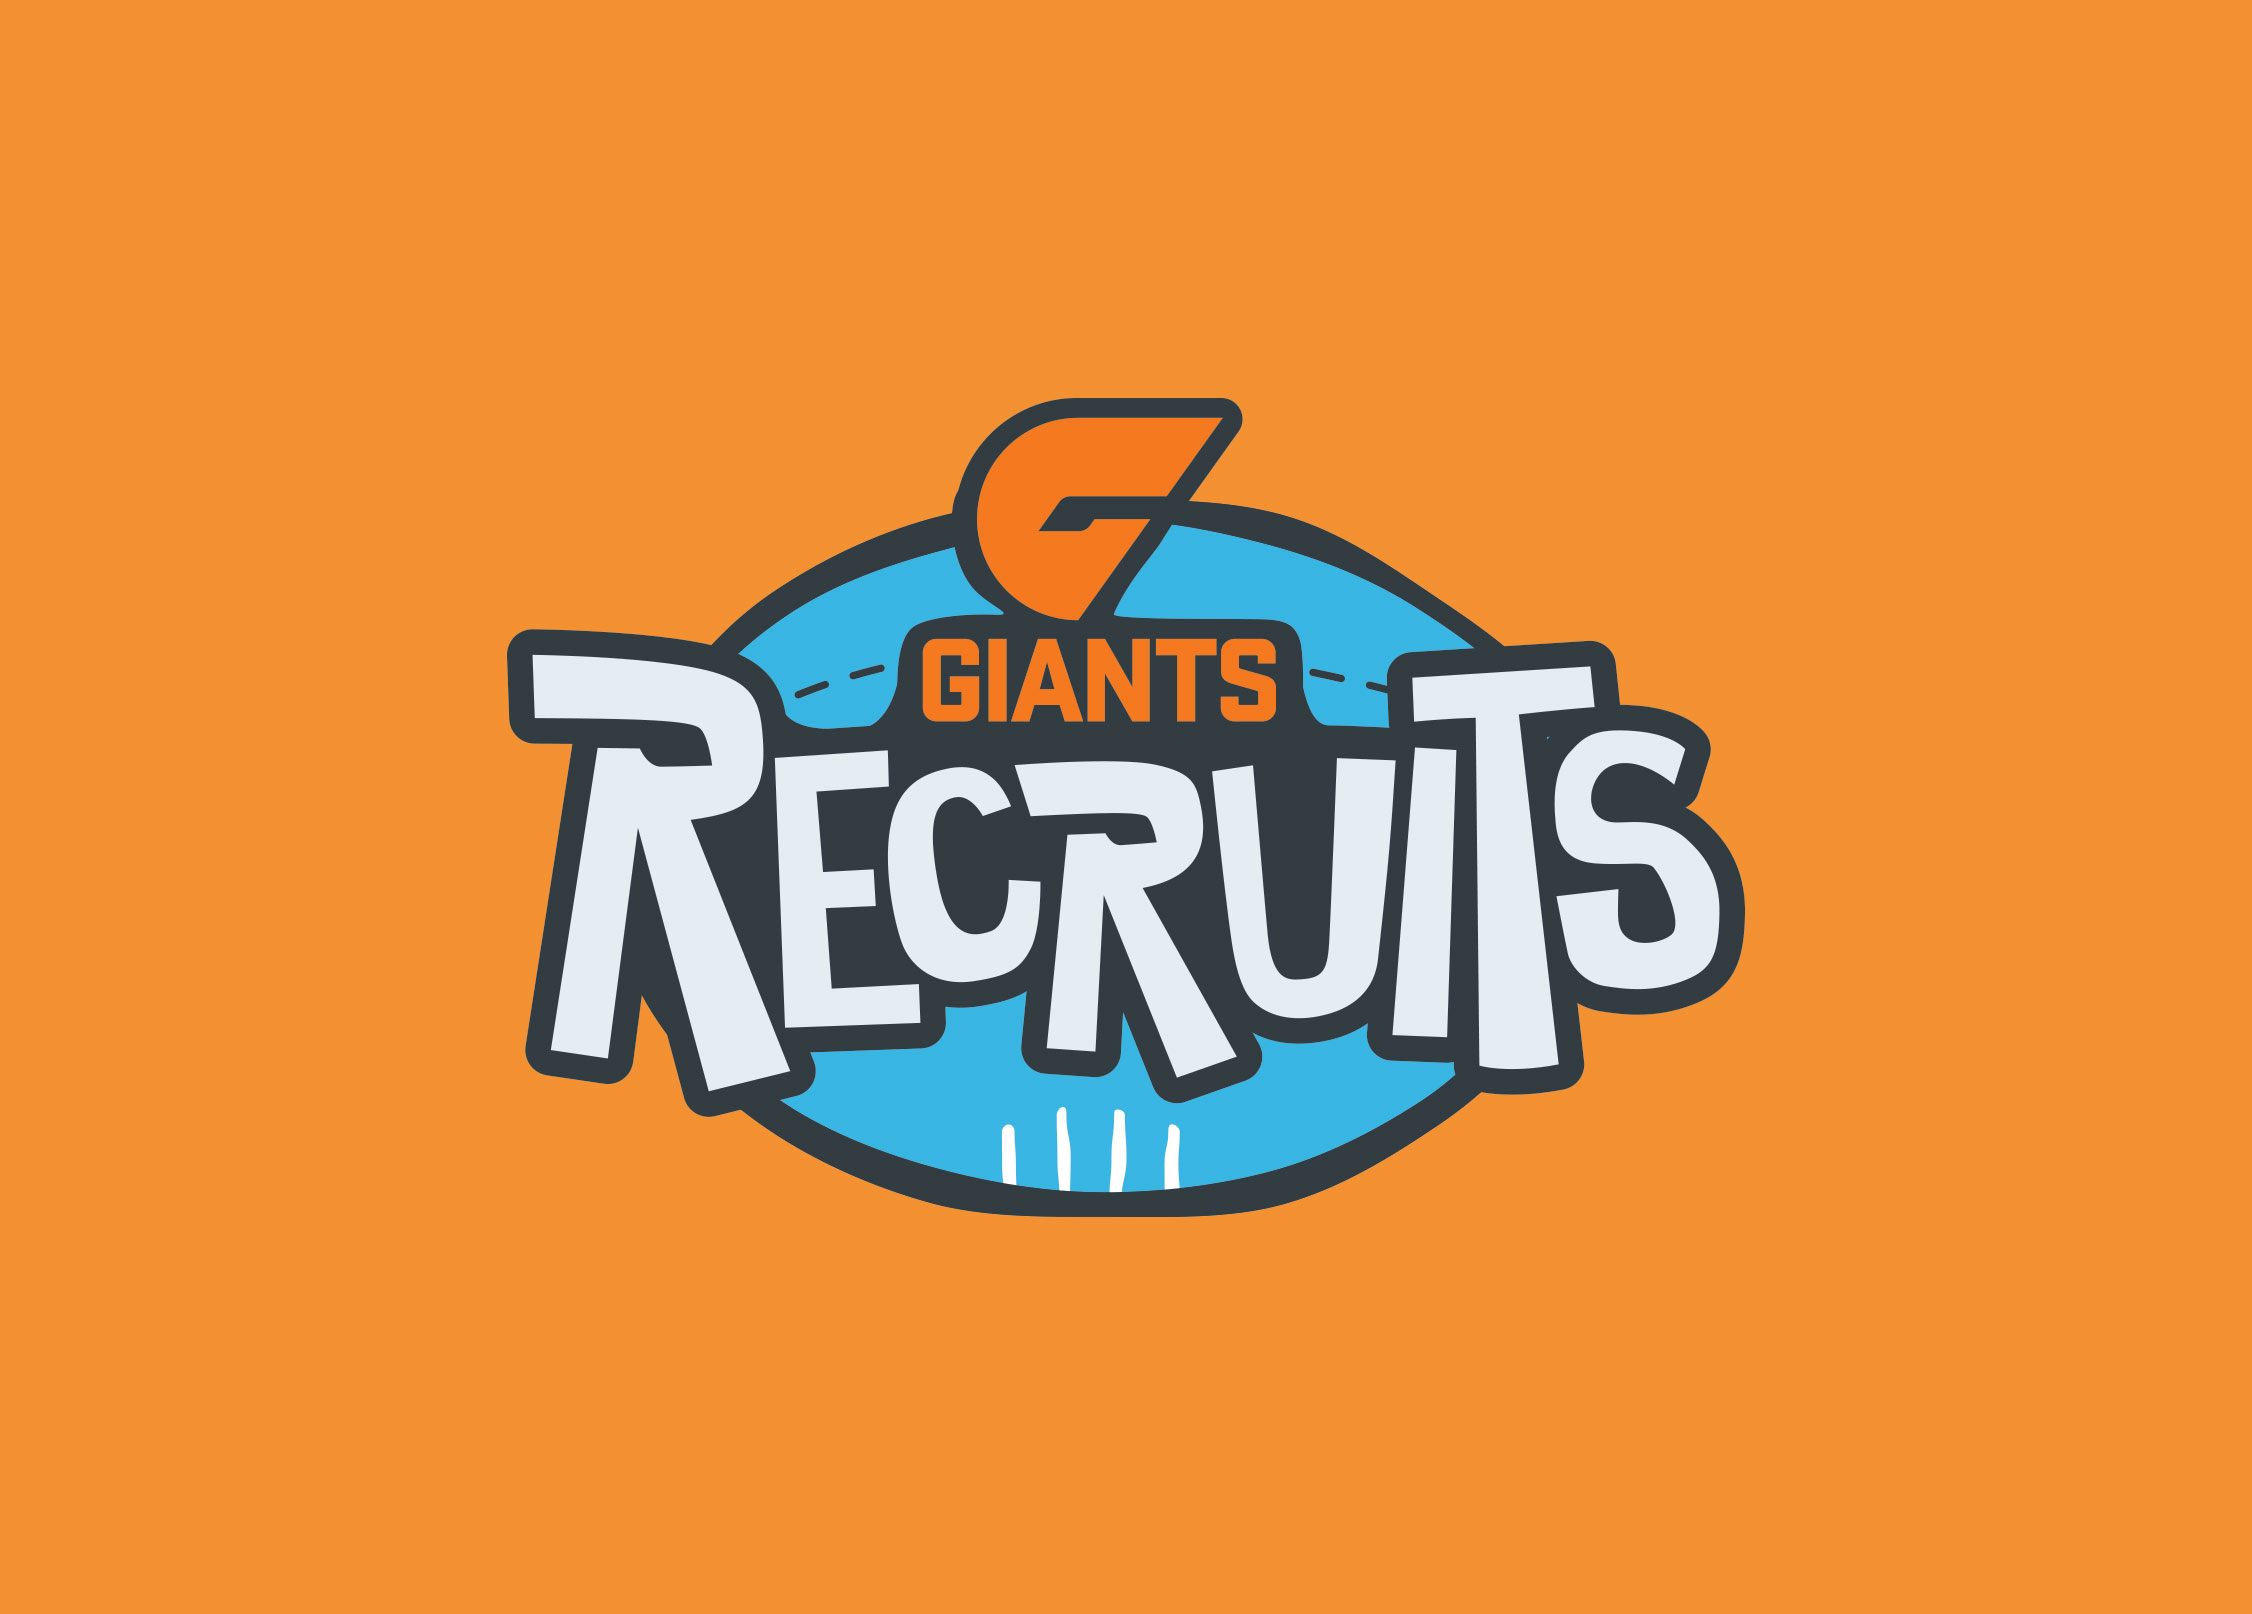 Greater Western Sydney Giants Recruits project